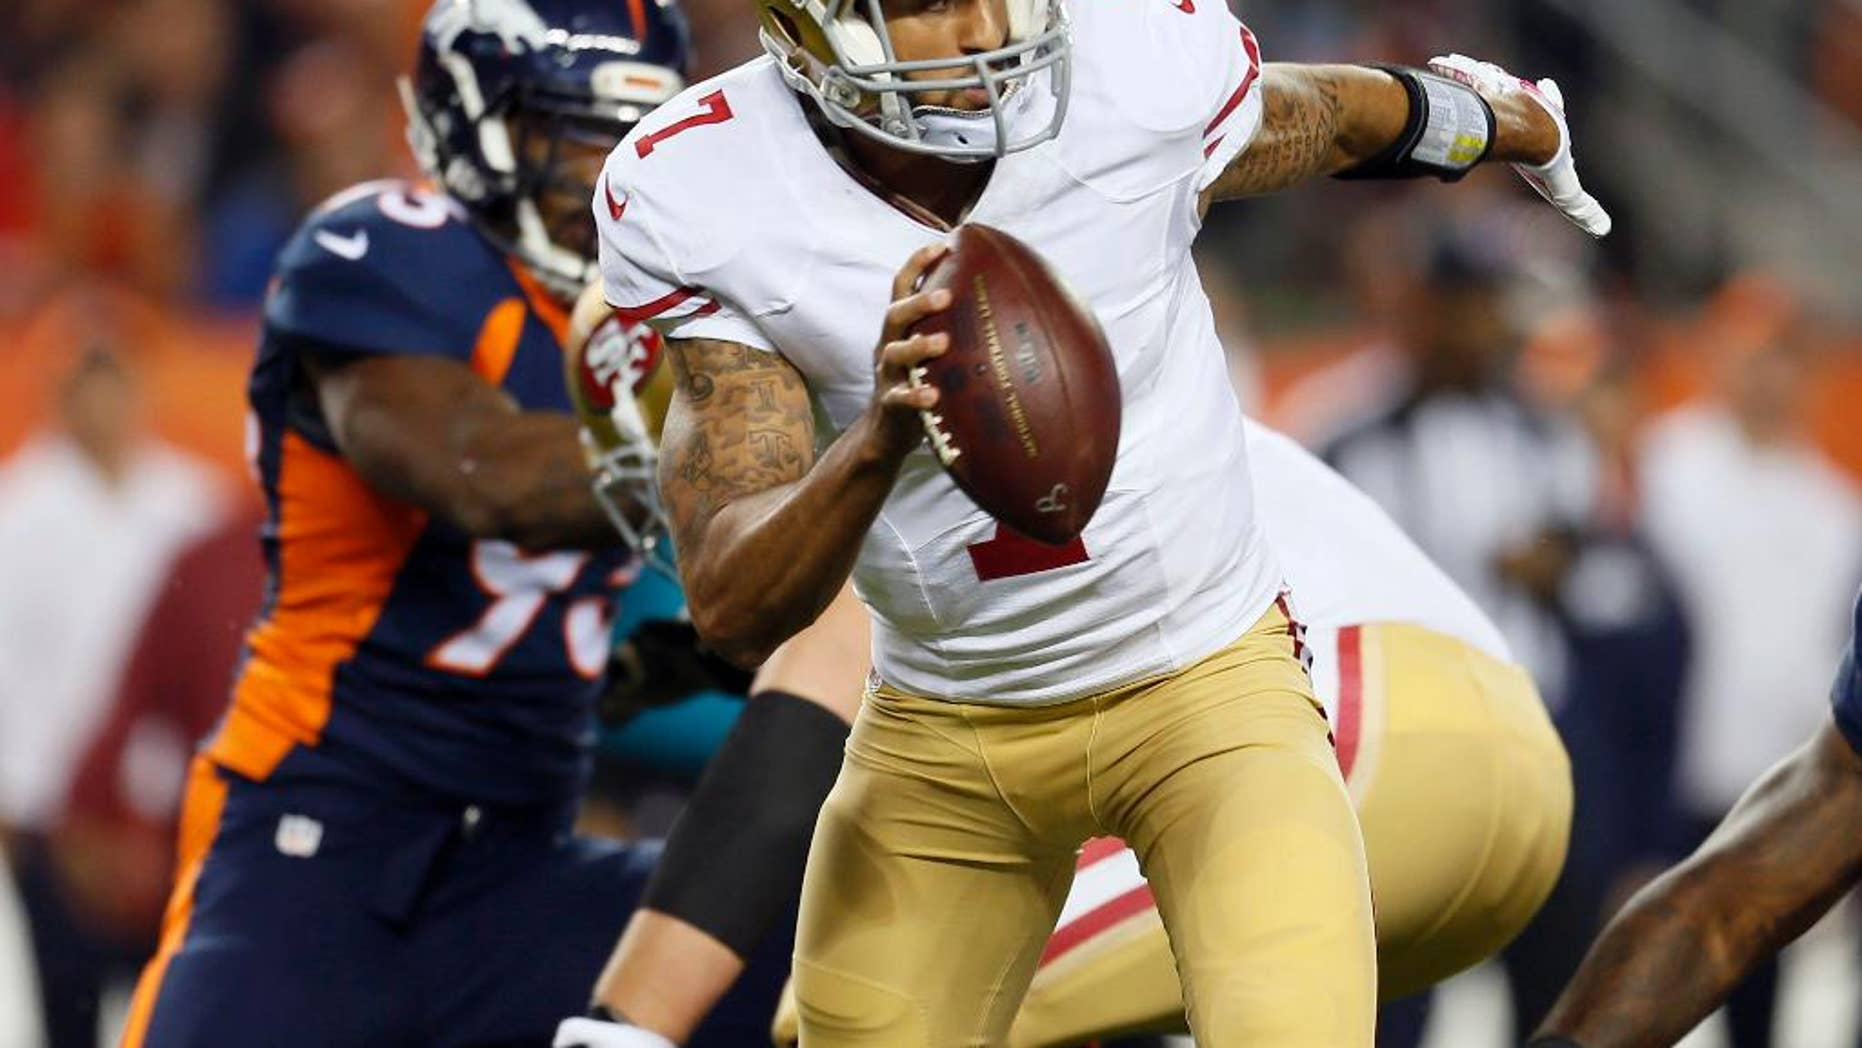 San Francisco 49ers quarterback Colin Kaepernick (7) is hurried against the Denver Broncos during the first half of an NFL football game, Sunday, Oct. 19, 2014, in Denver. (AP Photo/Joe Mahoney)